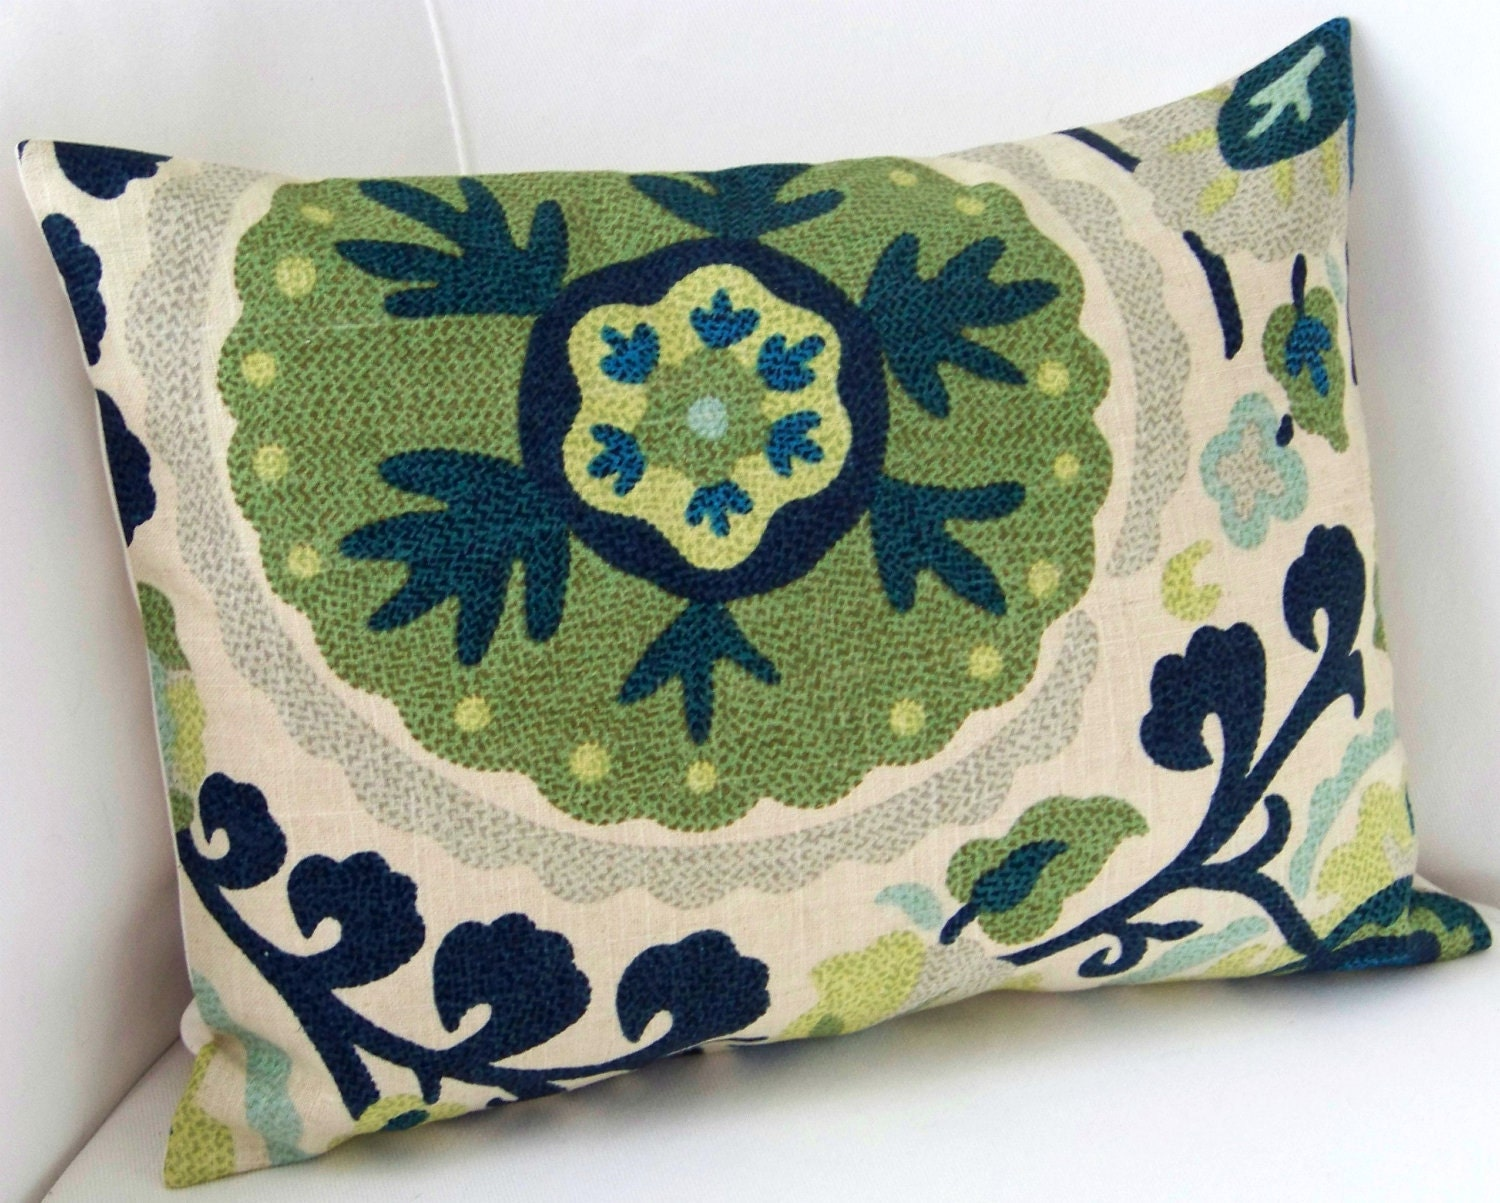 Decorative Pillows Etsy : Suzani Pillow Cover 12x16 Inch Blue Green Decorative by nestables